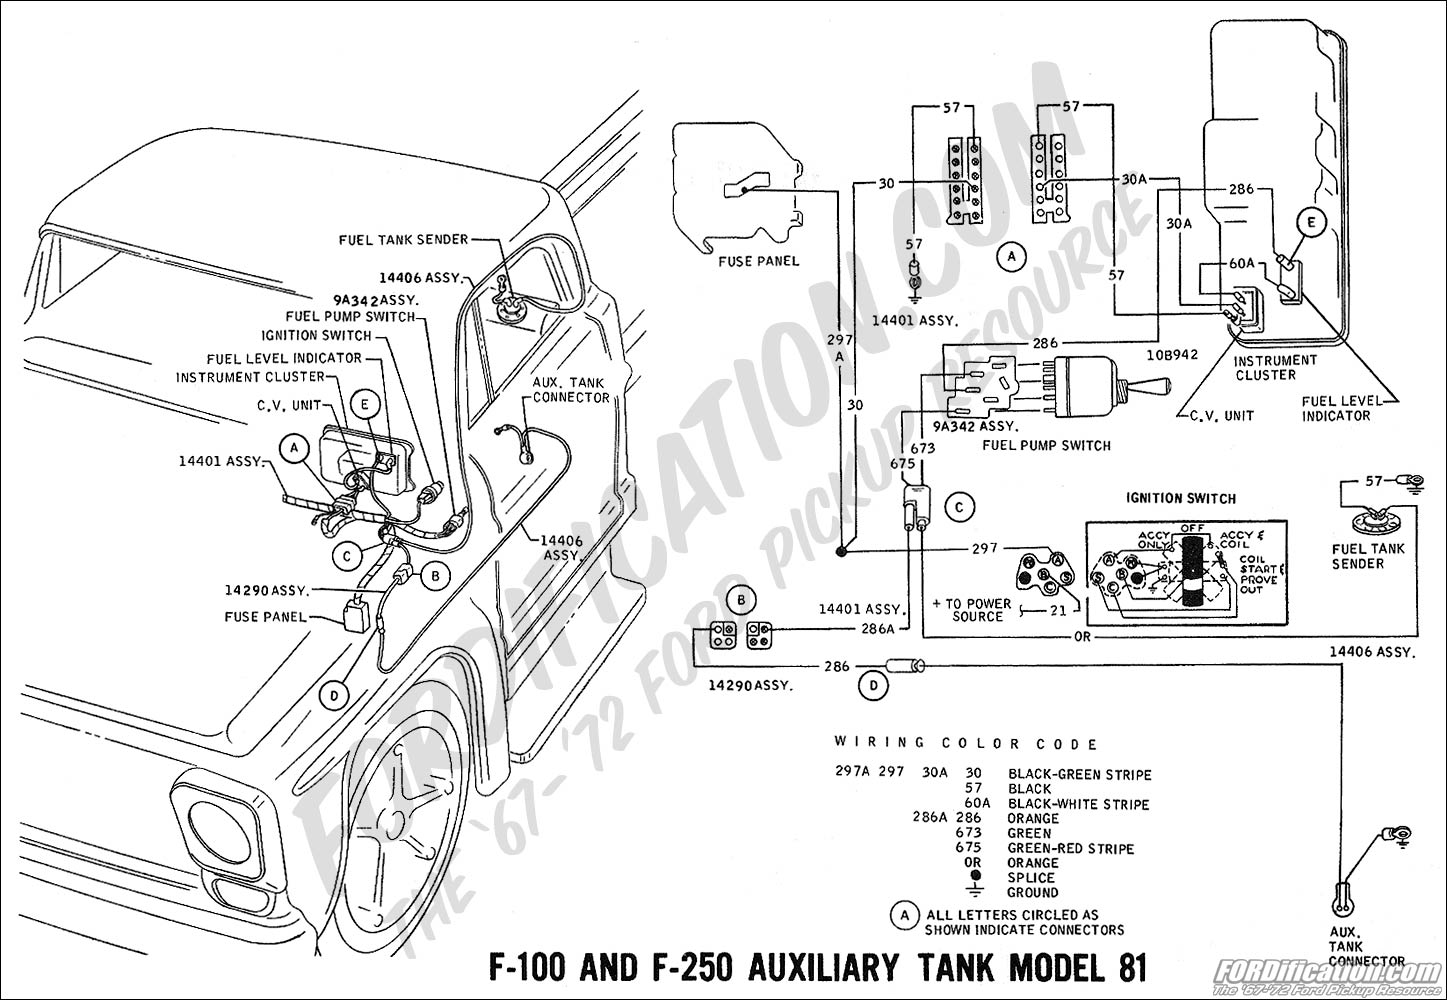 1969 Mustang Wiring Harness Diagram Likewise 1979 Ford Bronco Wiring on 1981 ford bronco wiring diagram, 1977 ford bronco wiring diagram, 1992 ford bronco wiring diagram, 1987 ford bronco wiring diagram, 1977 ford f-100 wiring diagram, 1968 ford falcon wiring diagram, 78 ford bronco wiring diagram, 72 ford steering column wiring diagram, 1974 ford bronco wiring diagram, 1973 ford bronco wiring diagram, 1966 ford bronco wiring diagram, 1965 ford galaxie 500 wiring diagram, 1969 ford galaxie 500 wiring diagram, 1976 ford bronco seats, 1968 ford bronco wiring diagram, 1985 ford bronco wiring diagram, 1990 ford bronco wiring diagram, ford bronco aftermarket wiring diagram, 1976 ford bronco fuel tank, 1984 ford bronco wiring diagram,